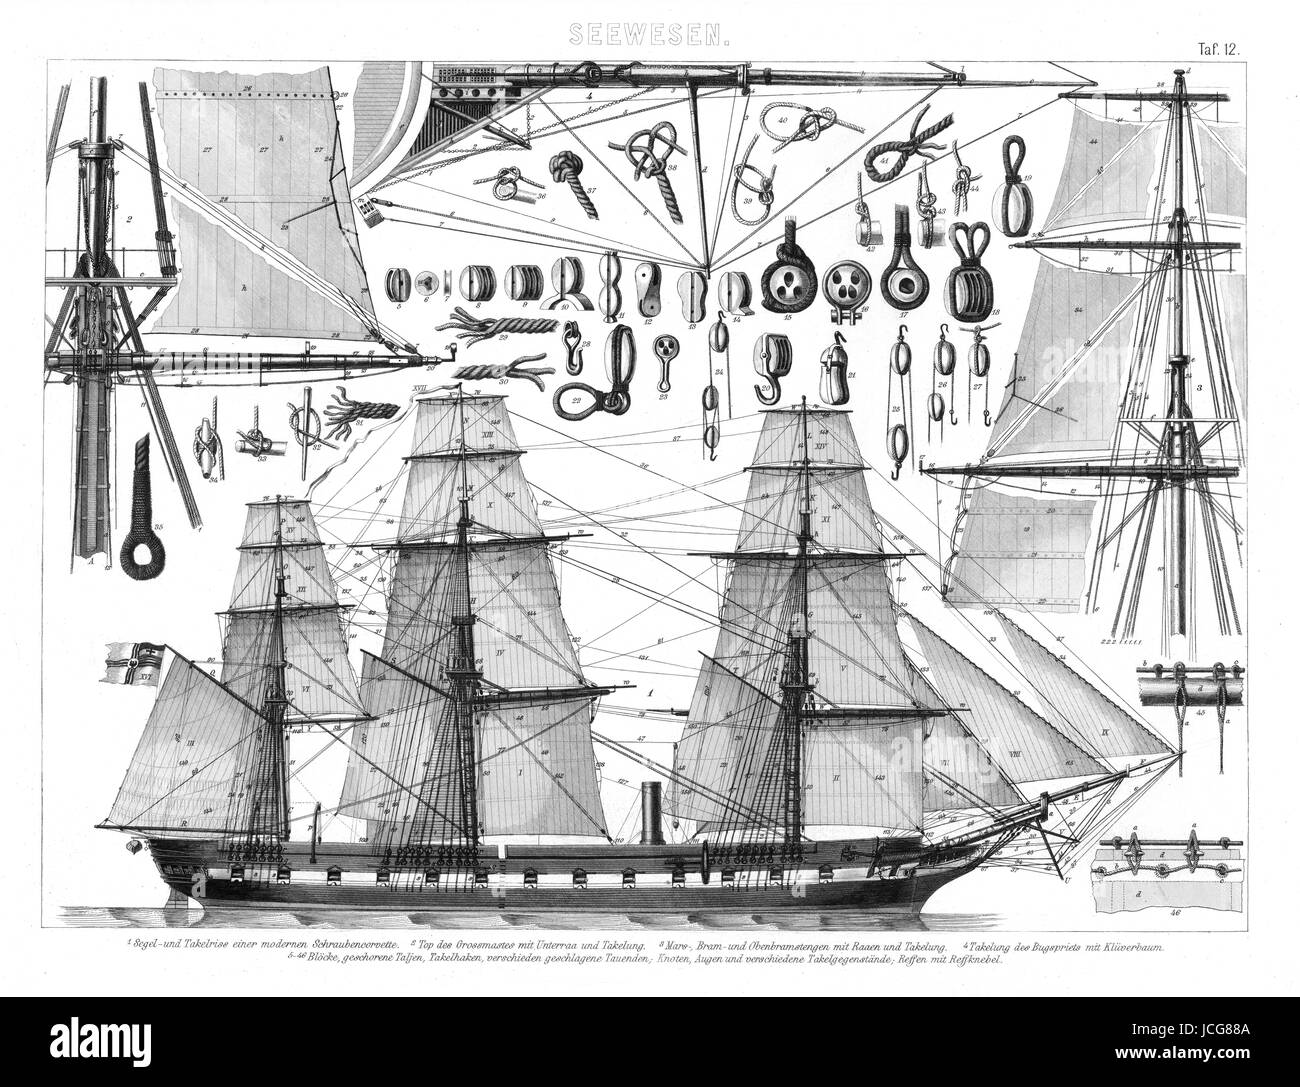 1874 Antique Bilder Print of a steam powered corvette class warship with a focus on the ship's rigging along - Stock Image